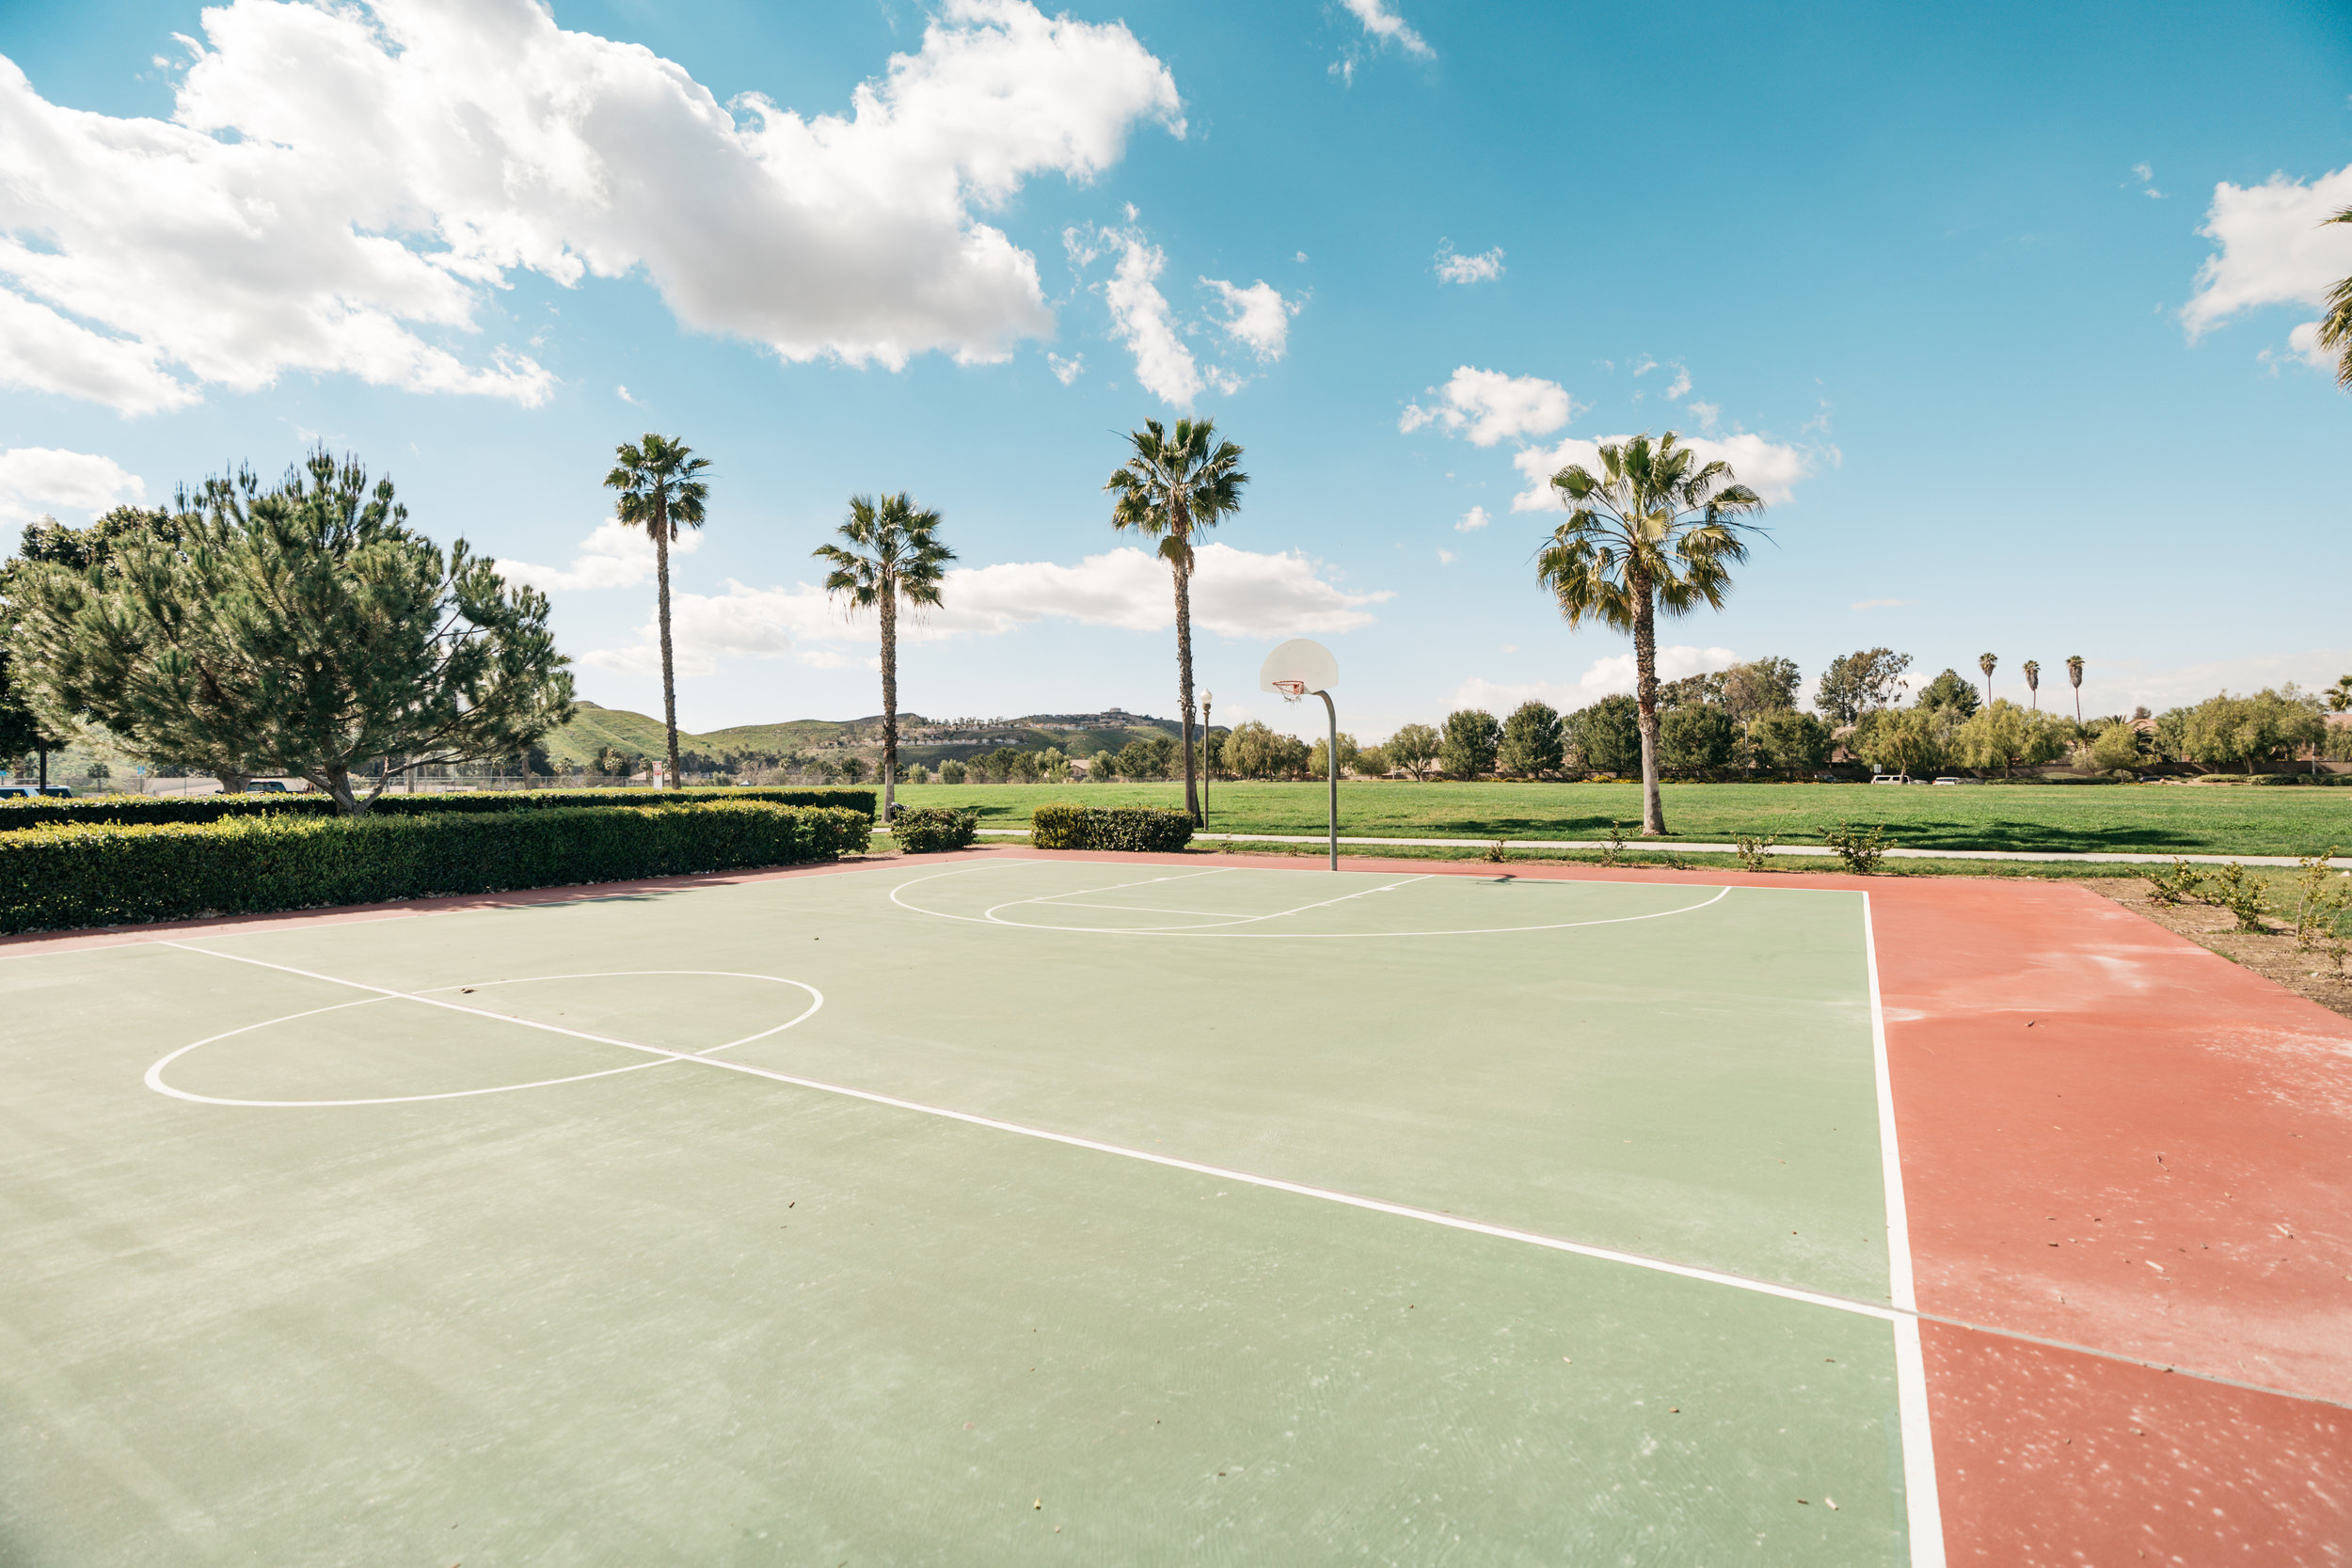 Victoria Grove Basketball Court